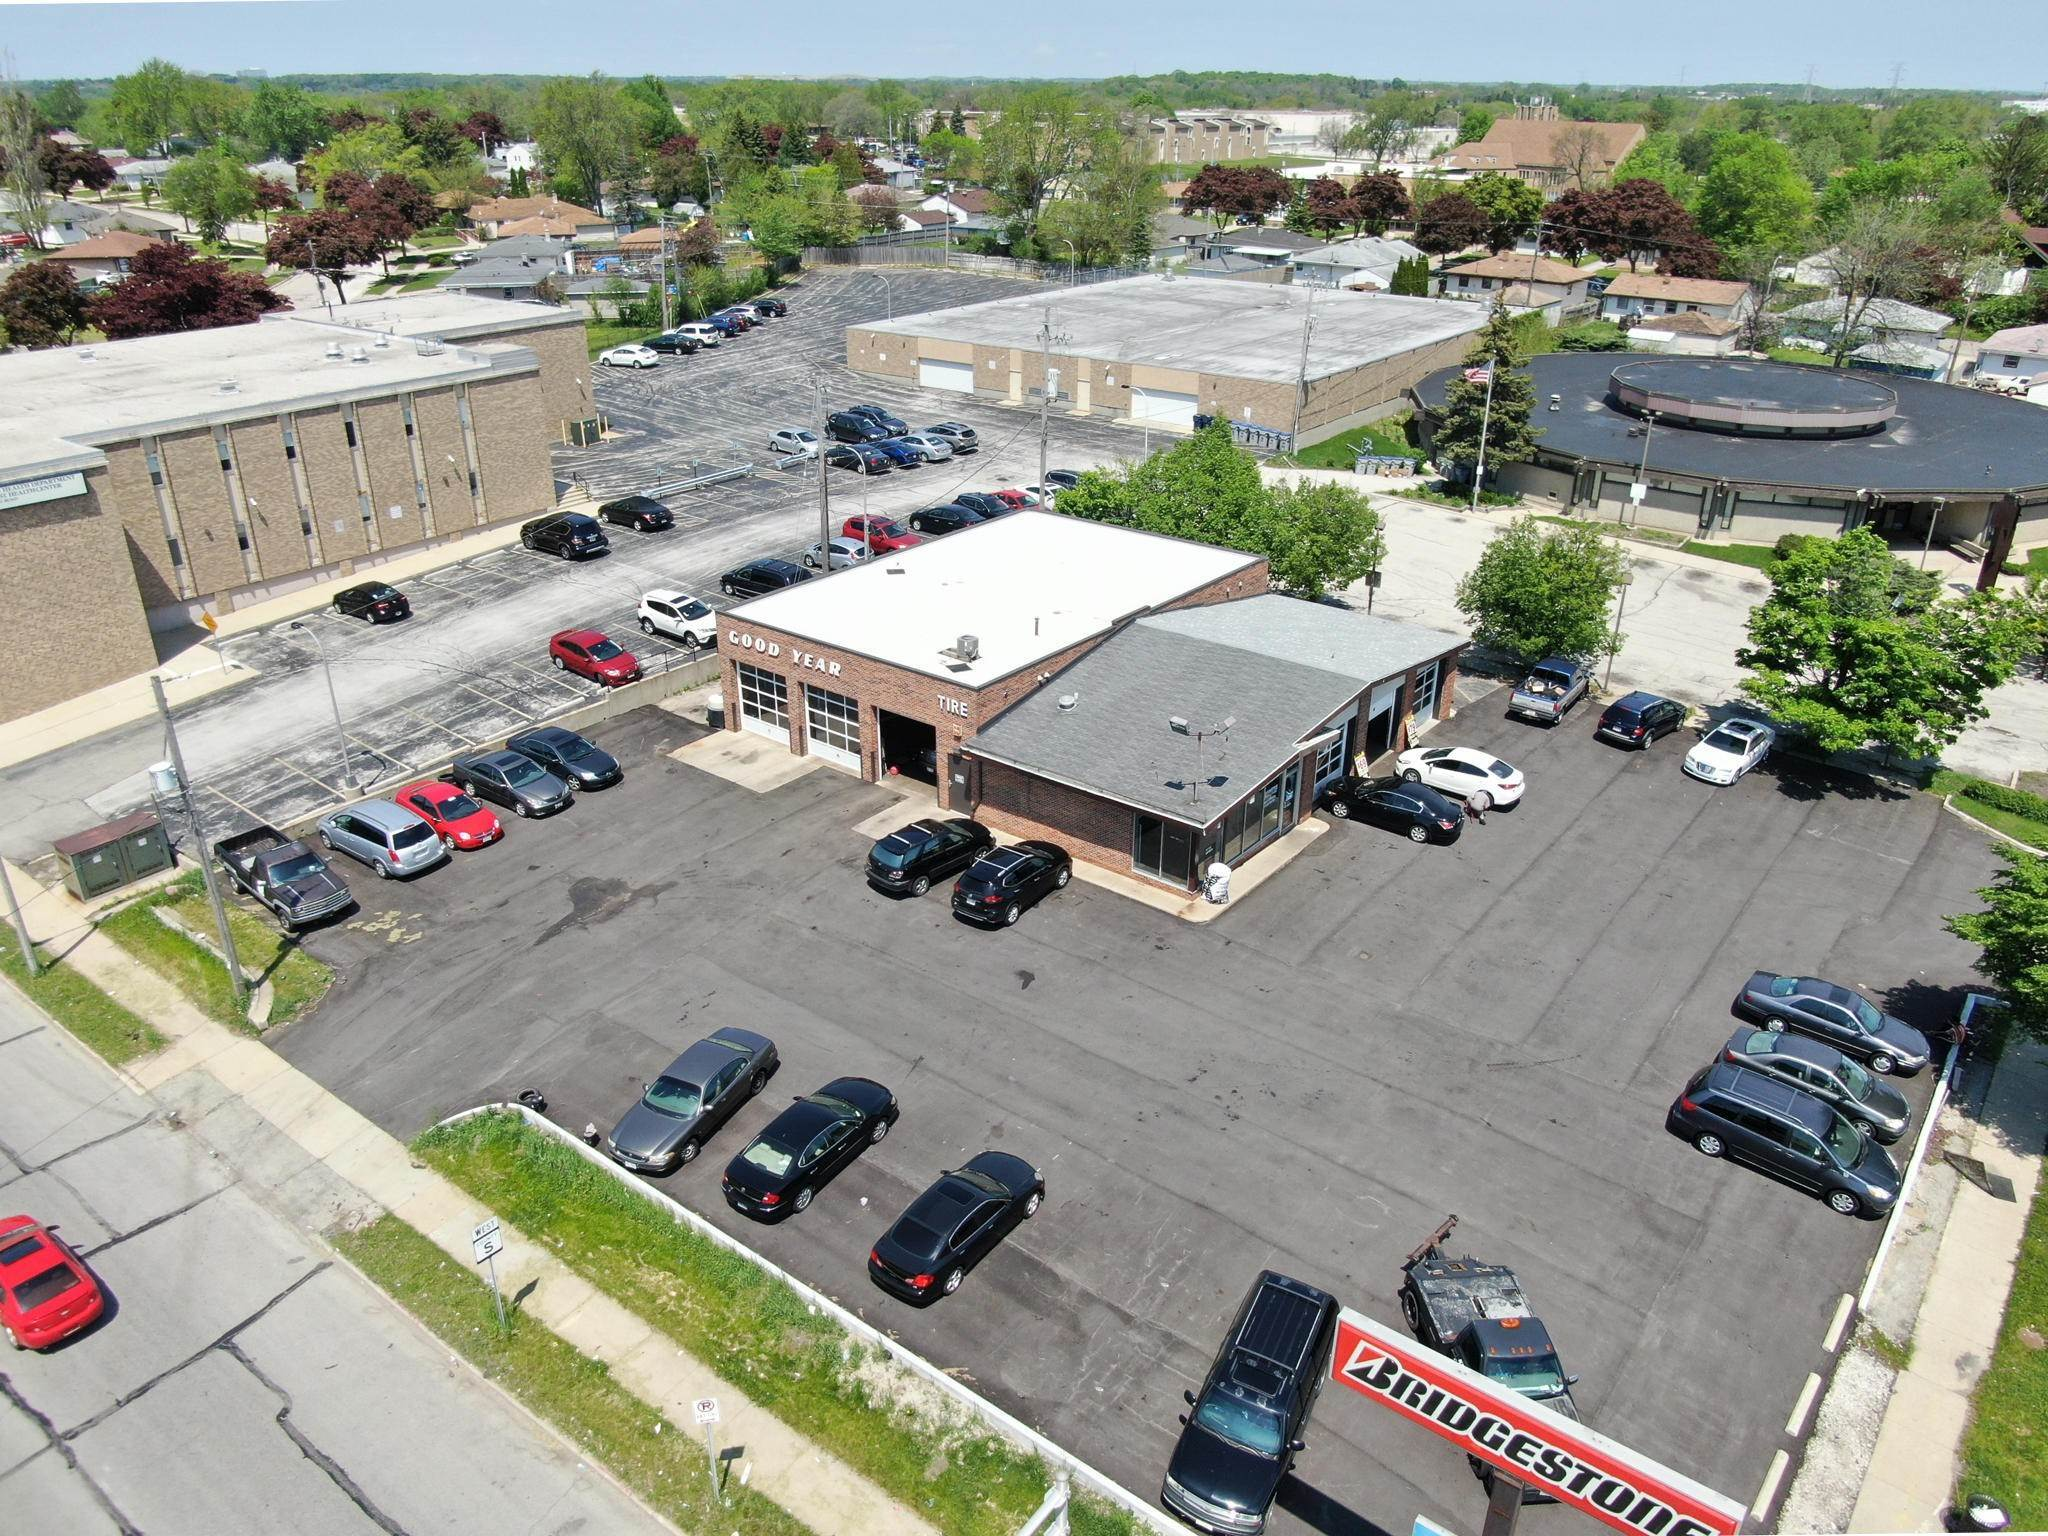 Commercial / Industrial for Sale at 6401 N 76th Street Milwaukee, Wisconsin 53223 United States